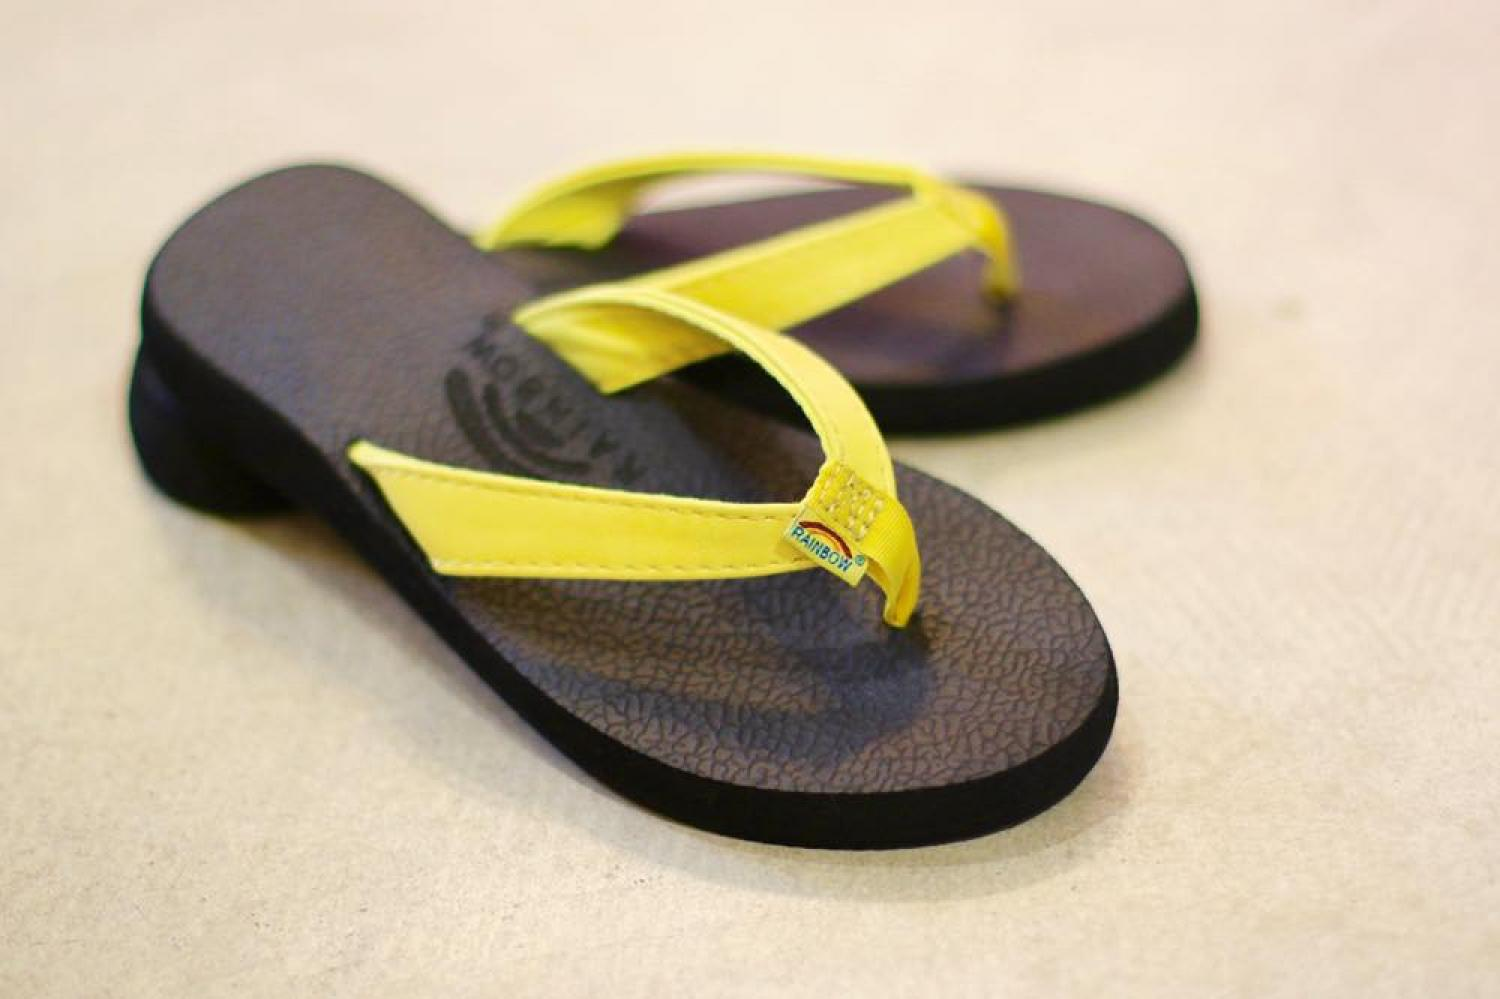 RAINBOW SANDALS WOMEN'S Cottons  Soft Rubber LEMON YELLOW